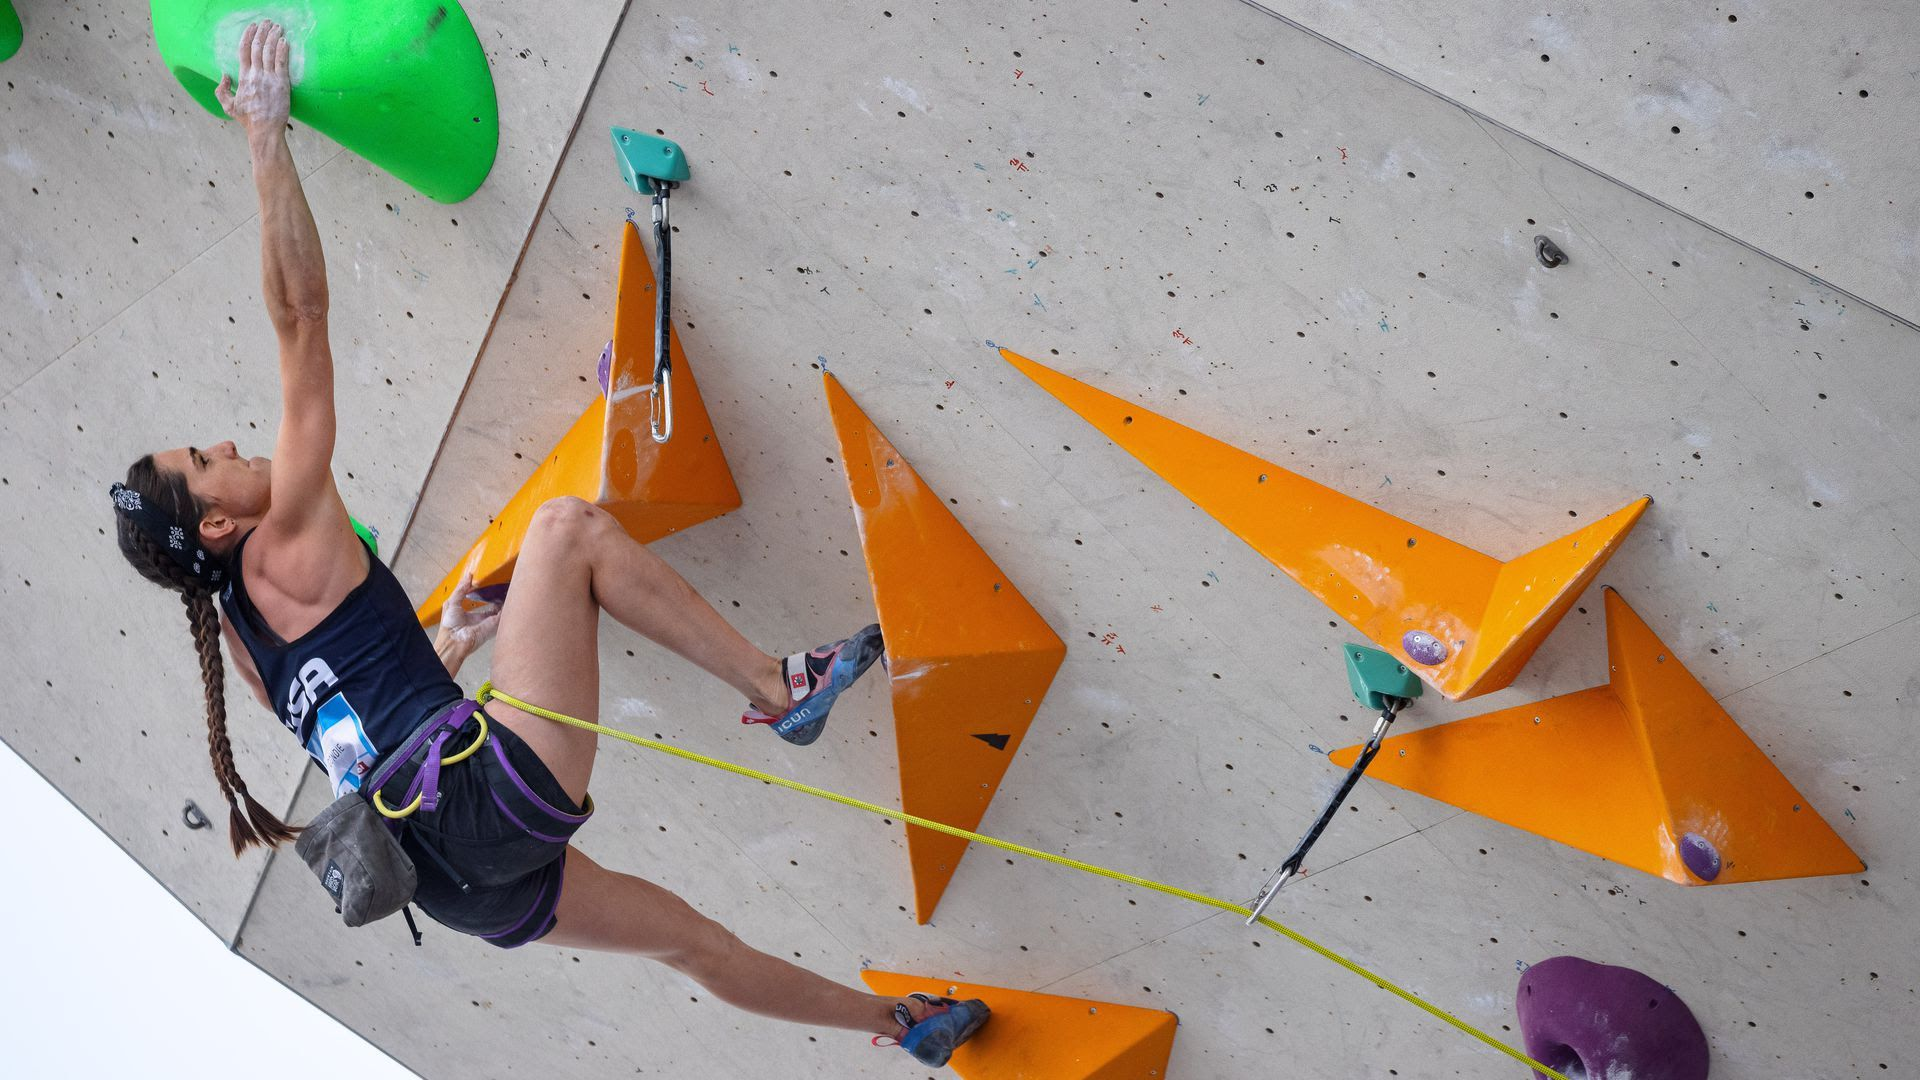 Olympic athlete Kyra Condie climbs an indoor rock climbing wall.